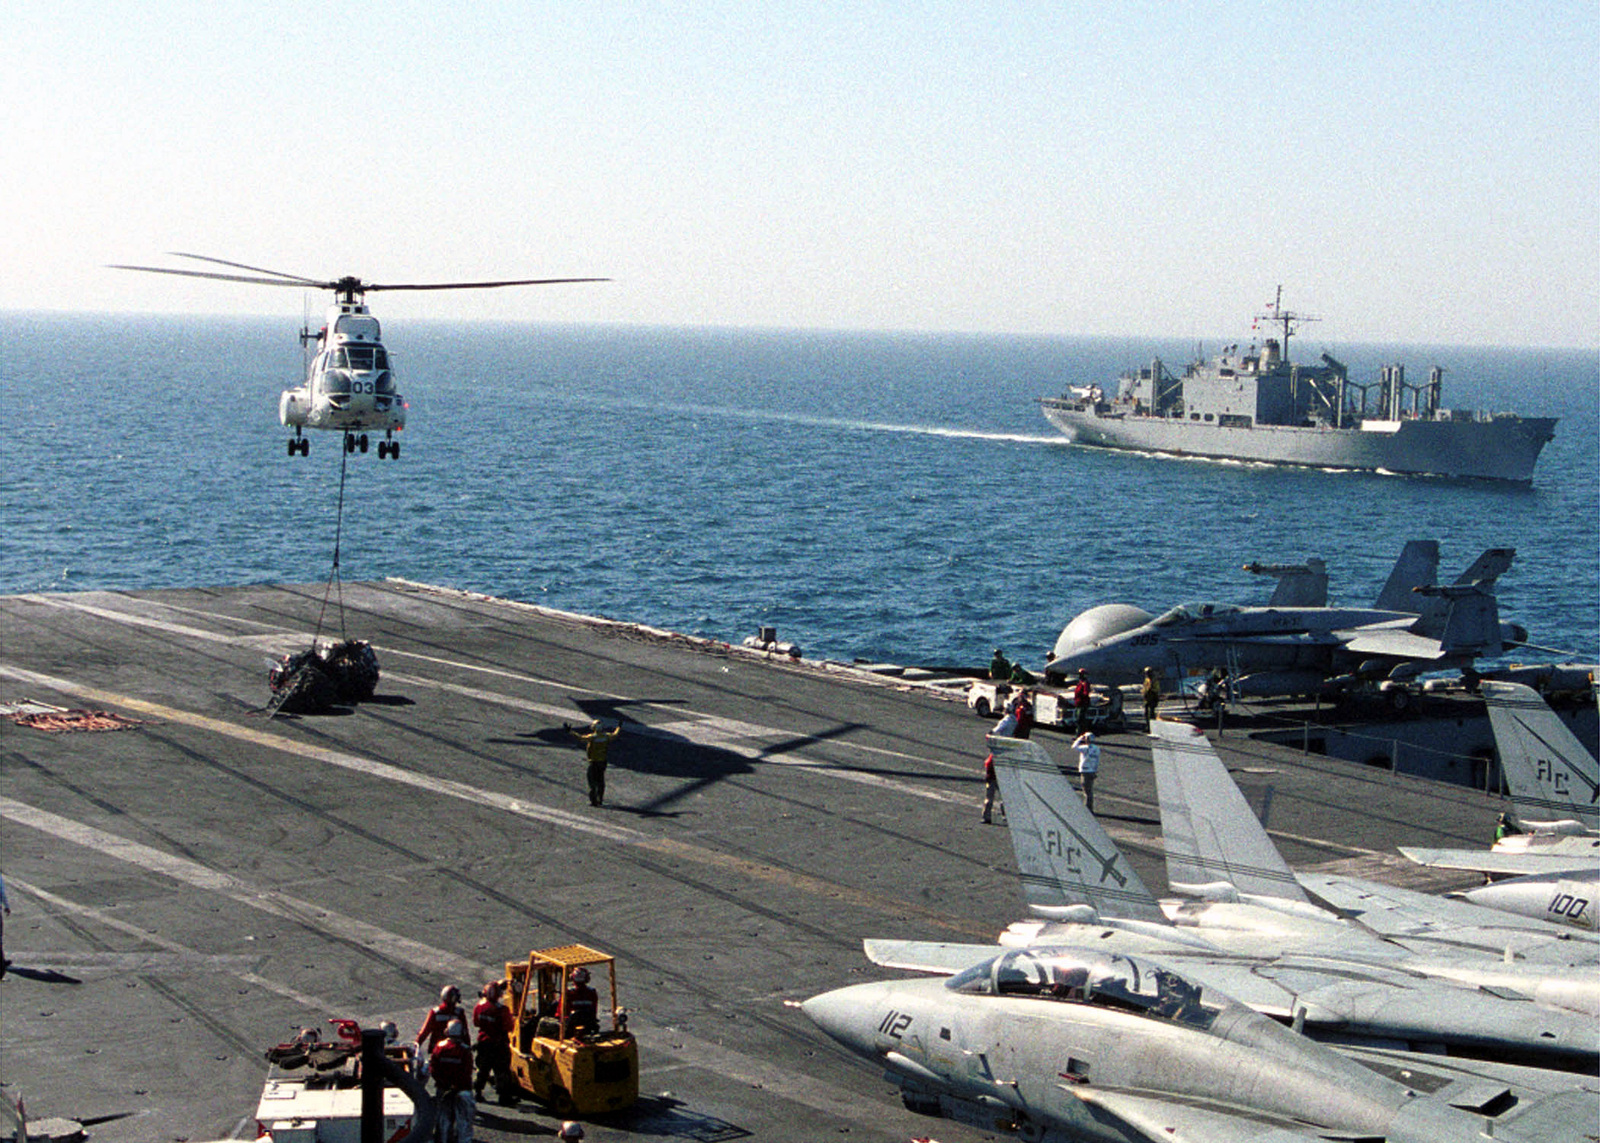 A SA-330 Puma helicopter assists in transporting stores between USNS Concord (T-AFS 5) and USS Harry S. Truman (CVN 75) during a vertical replenishment (VERTREP) at sea. TRUMAN is on station in the Arabian Gulf in support of Operation SOUTHERN WATCH. SOUTHERN WATCH establishes a southern no fly zone over Iraq and extends to the borders to just south of Baghdad, capital city of Iraq